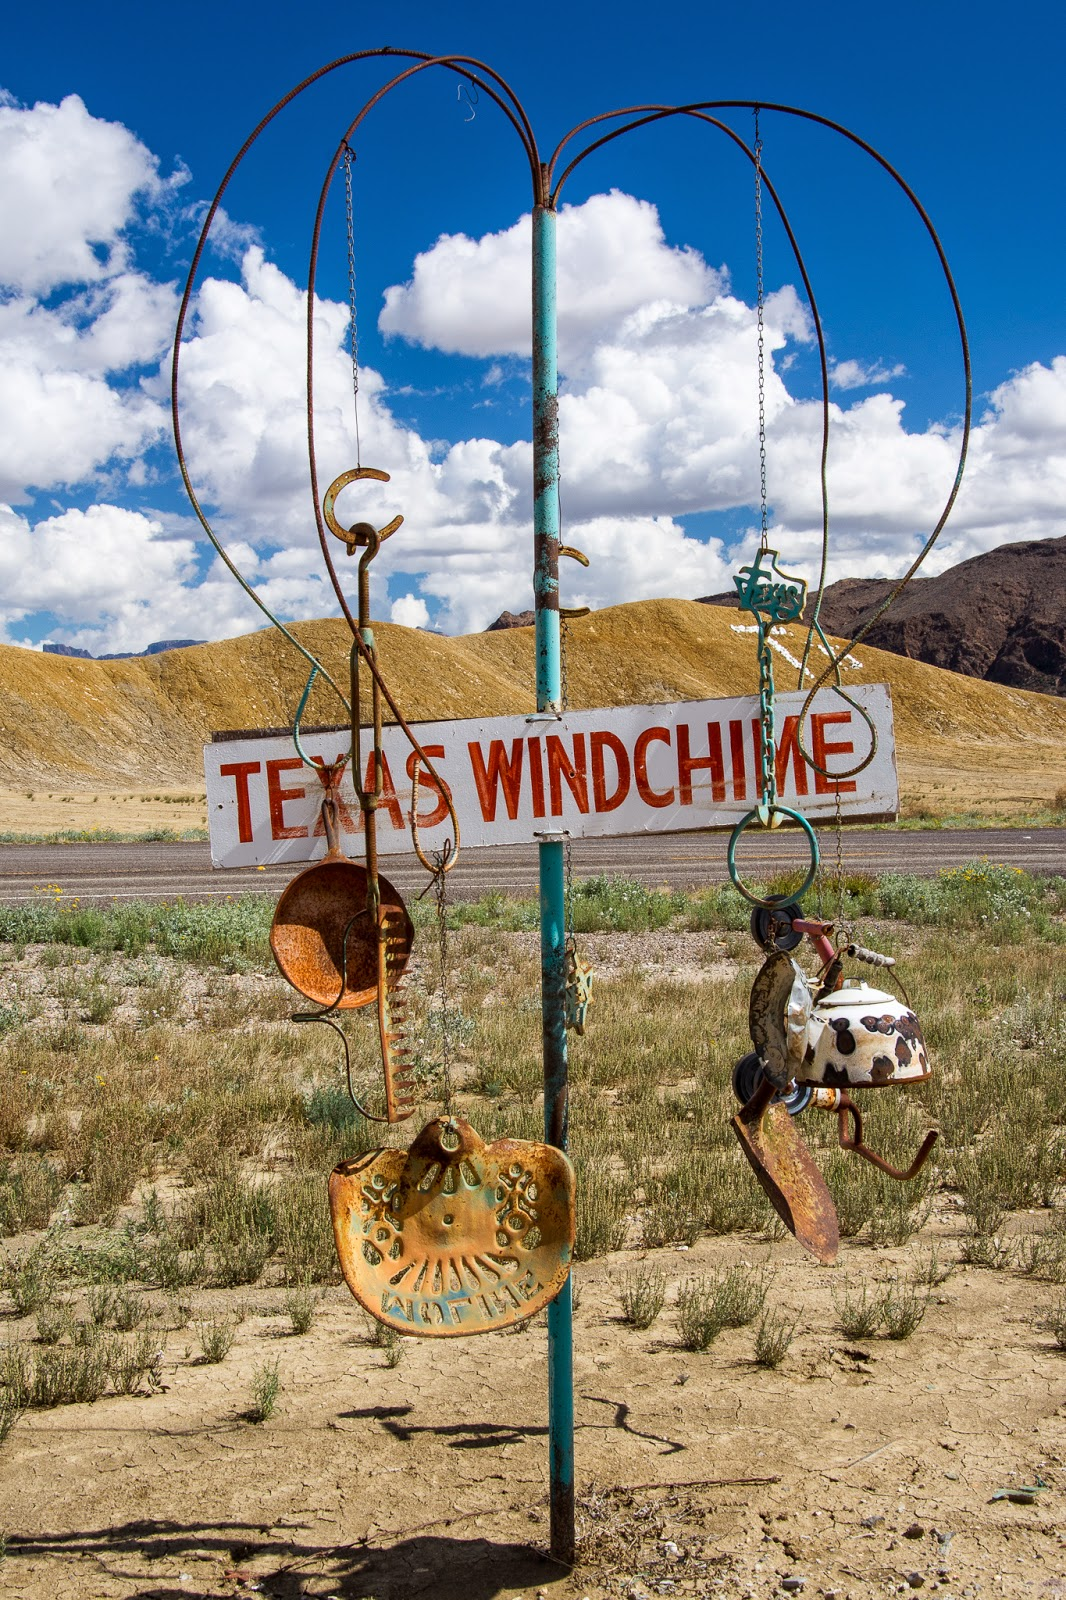 Texas Windchime, Terlingua